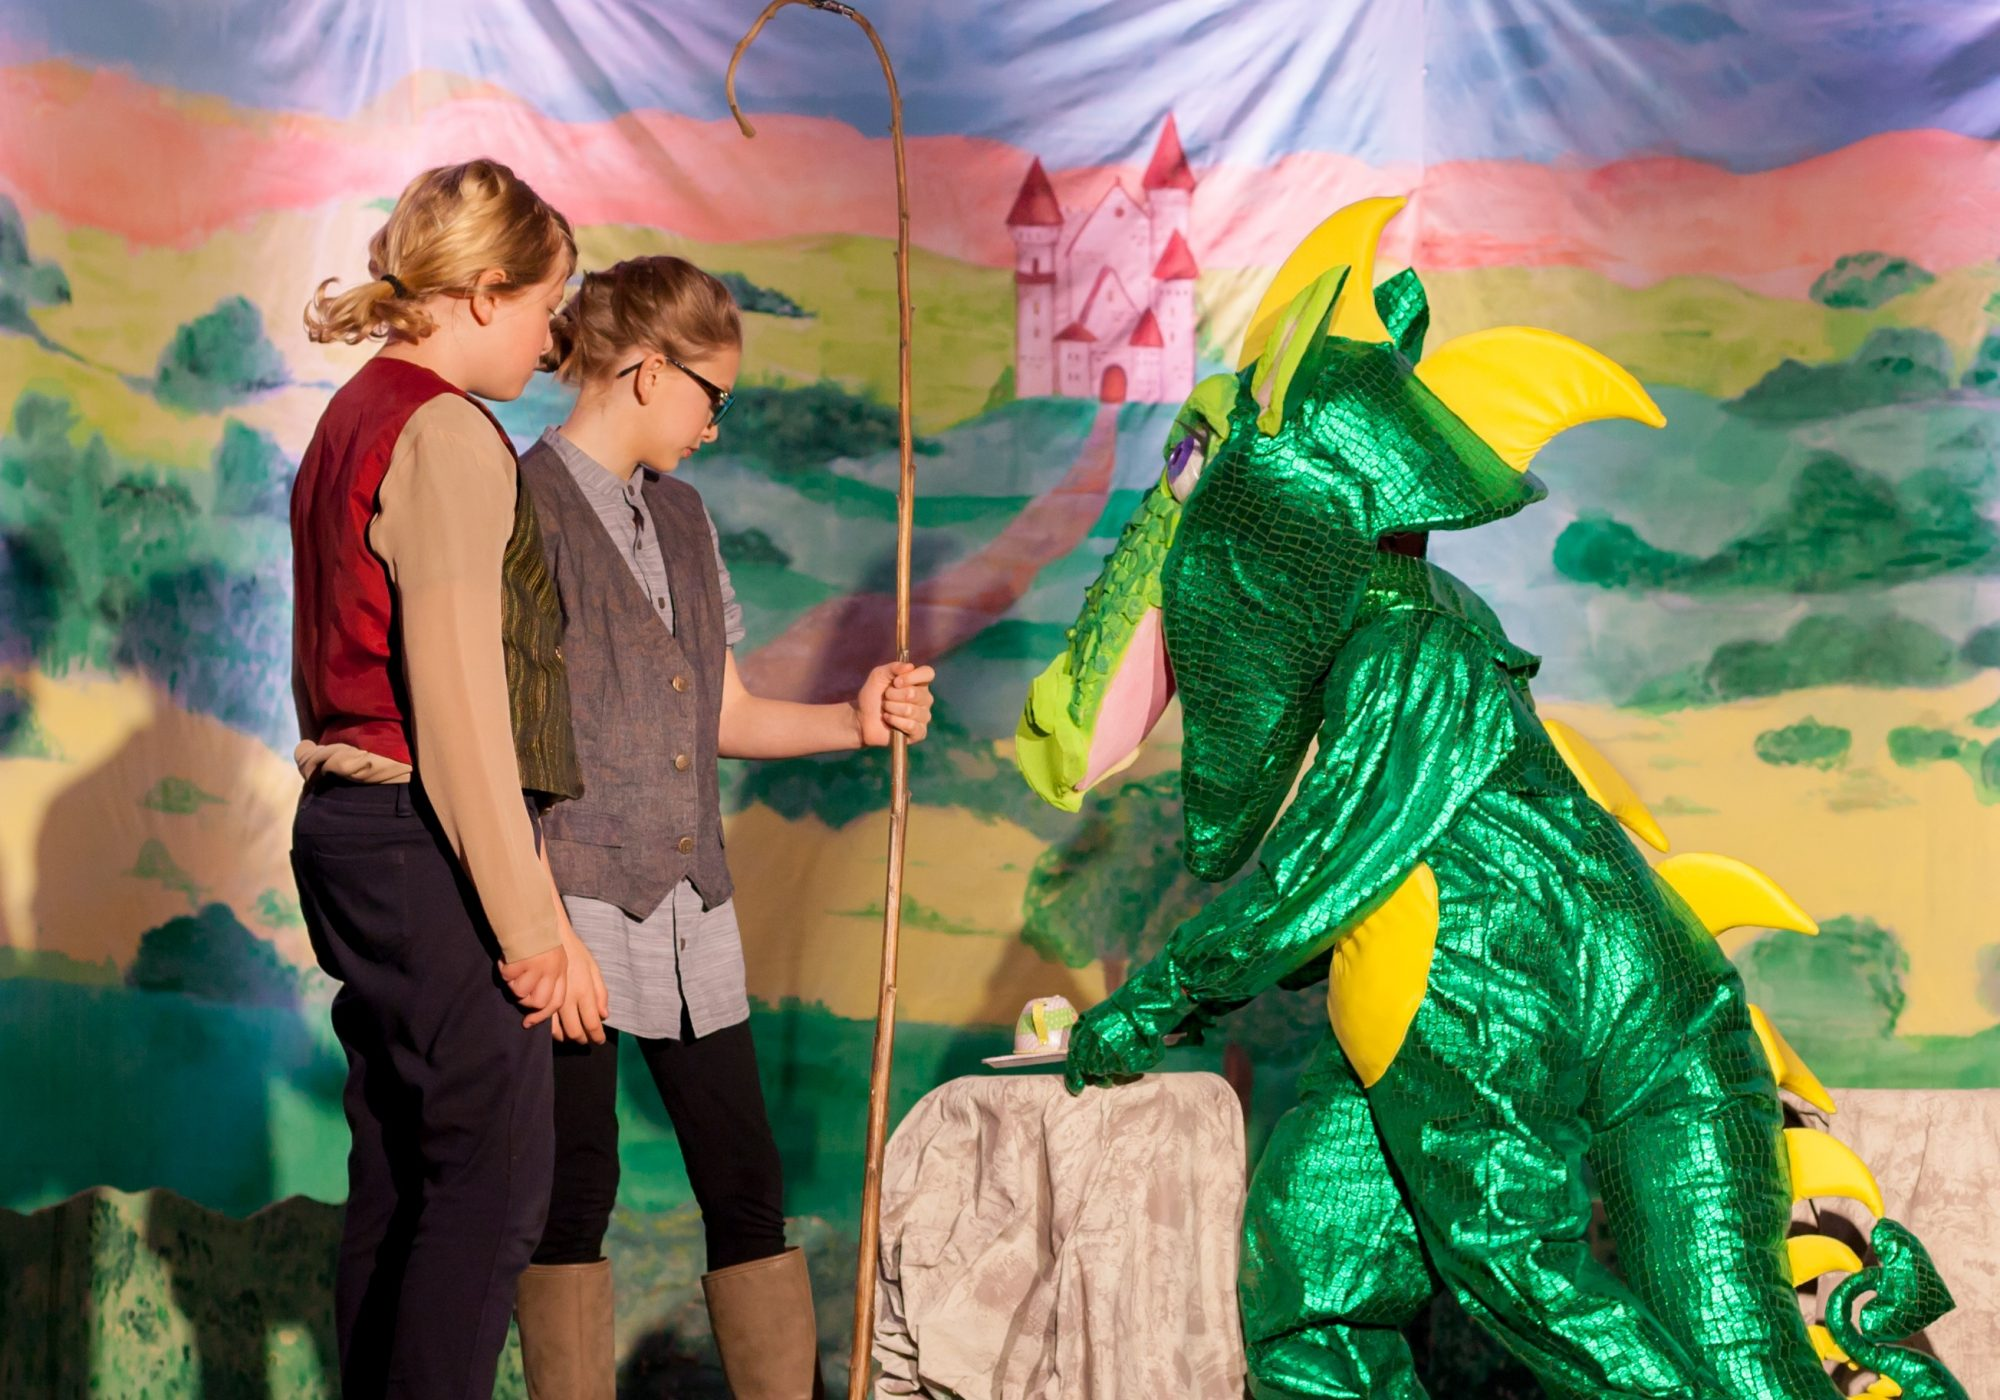 Students on stage for a play.